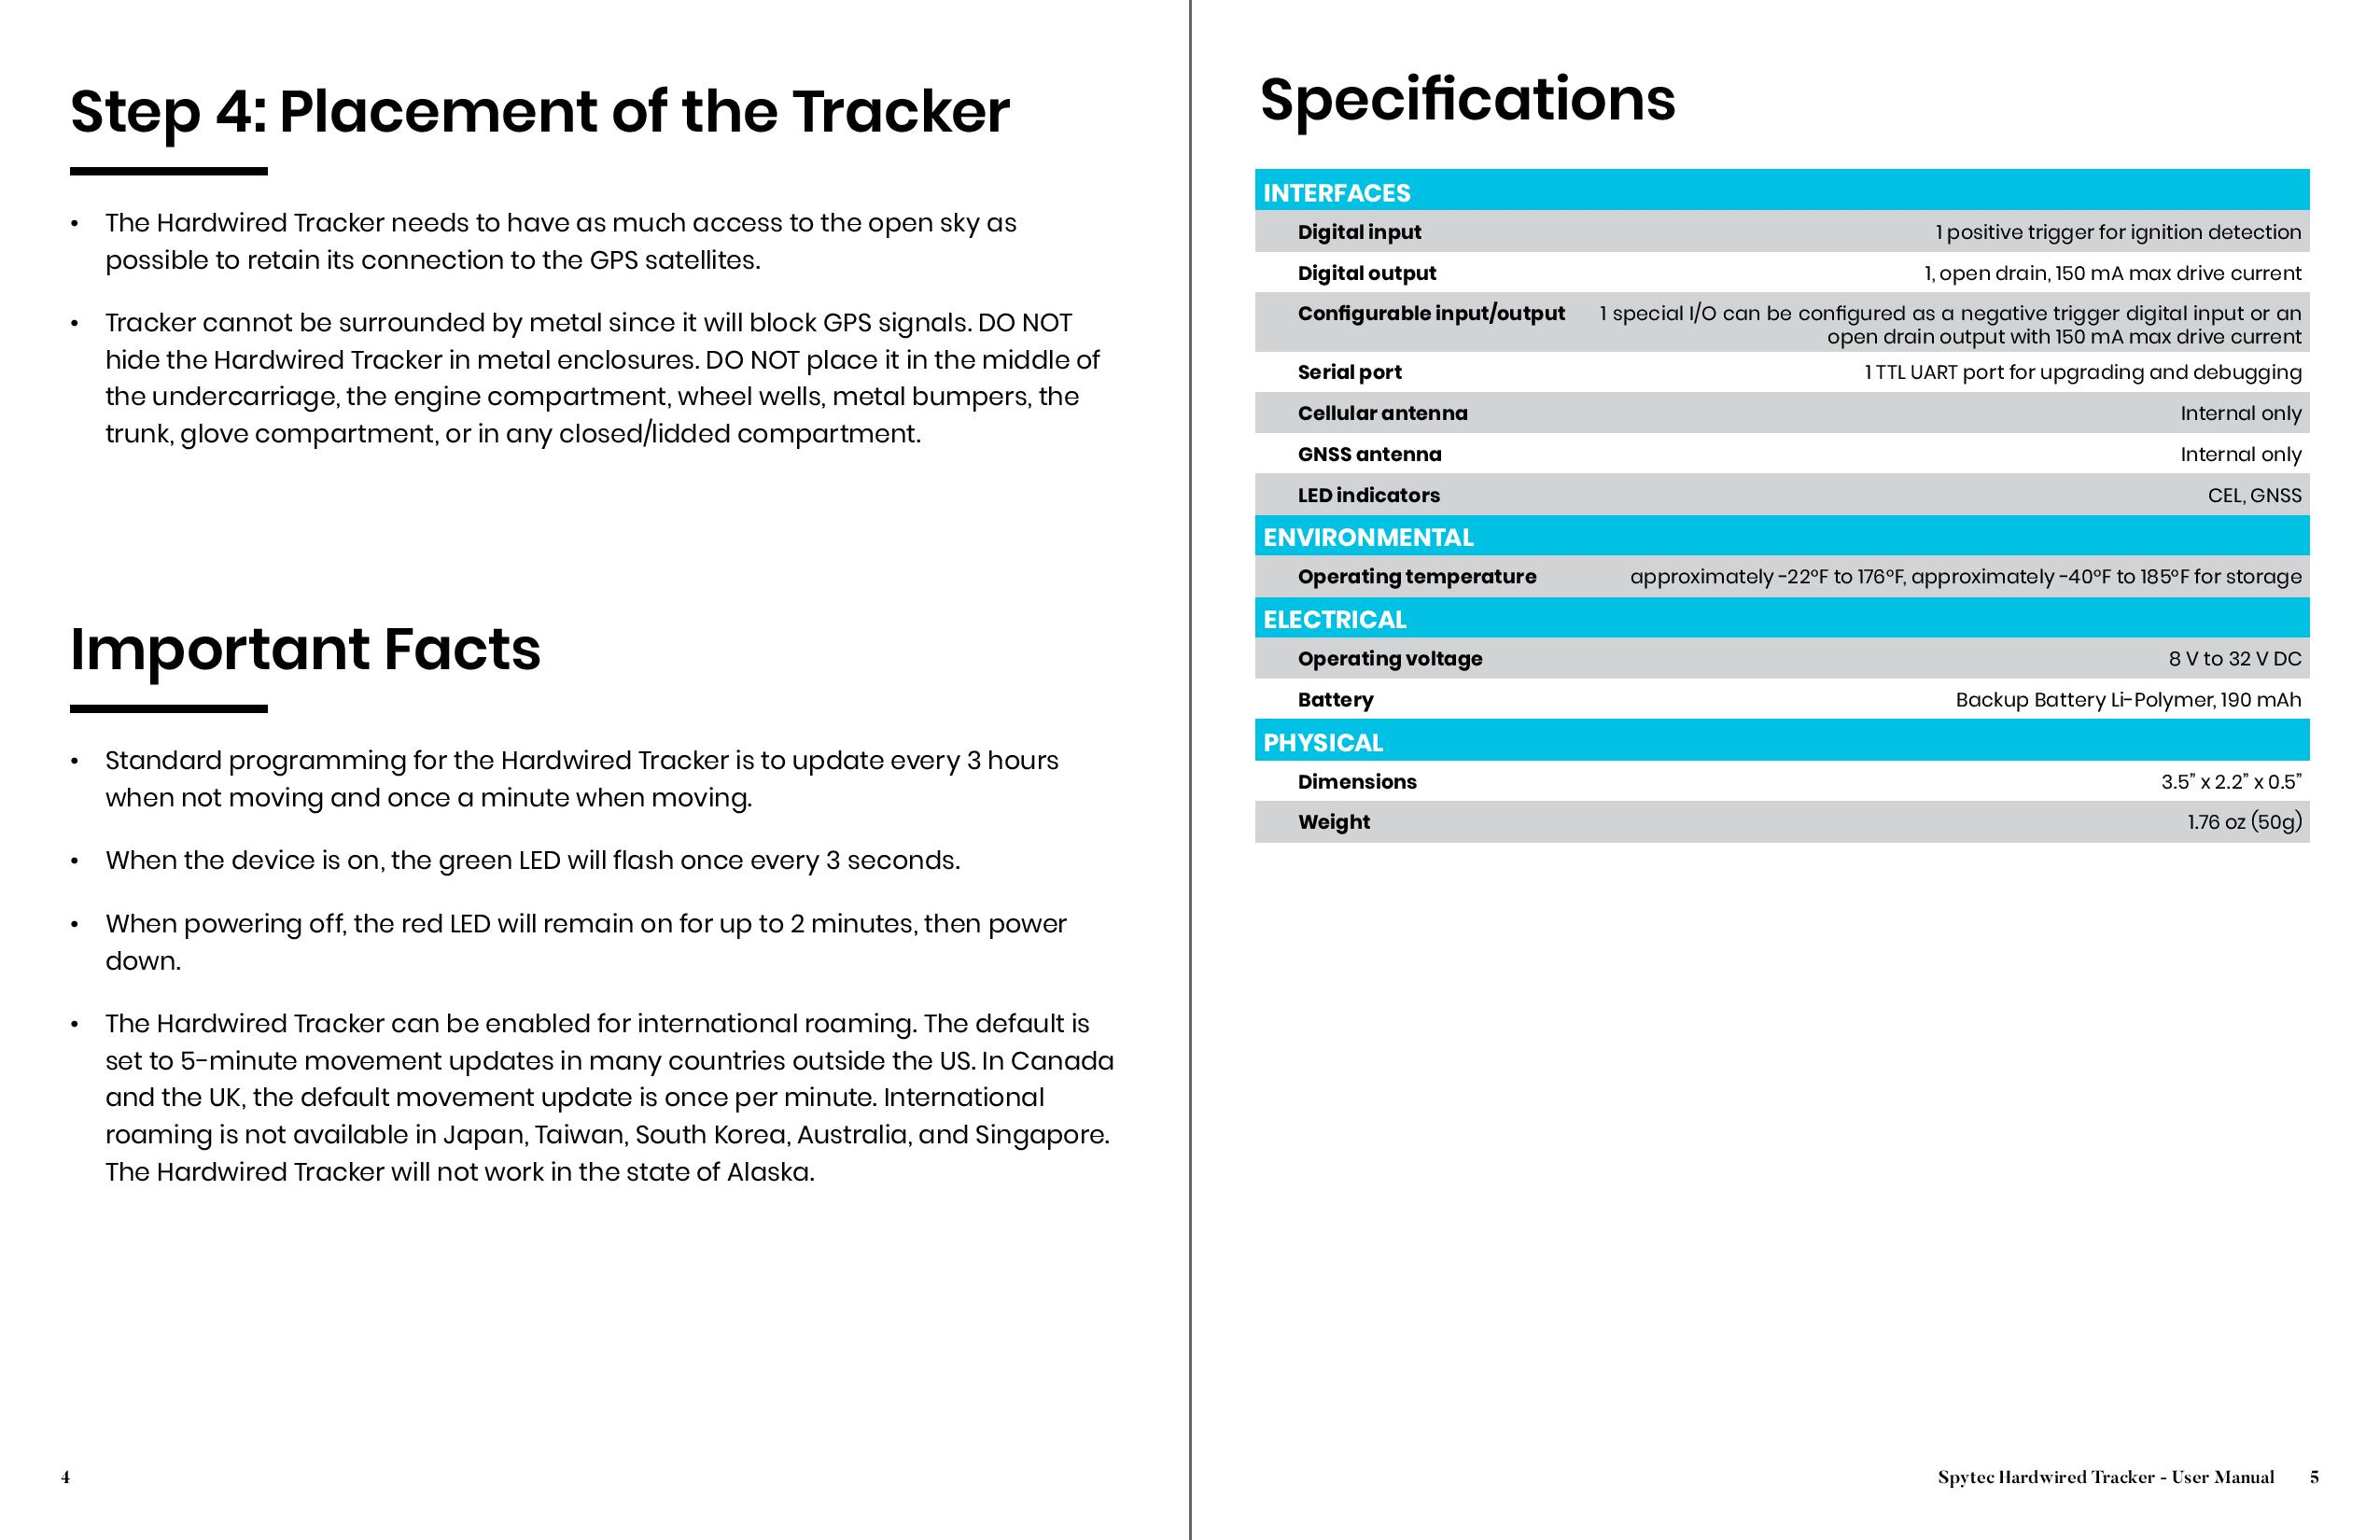 Hardwired_Tracker_User_Manual__1_-page-003.jpg